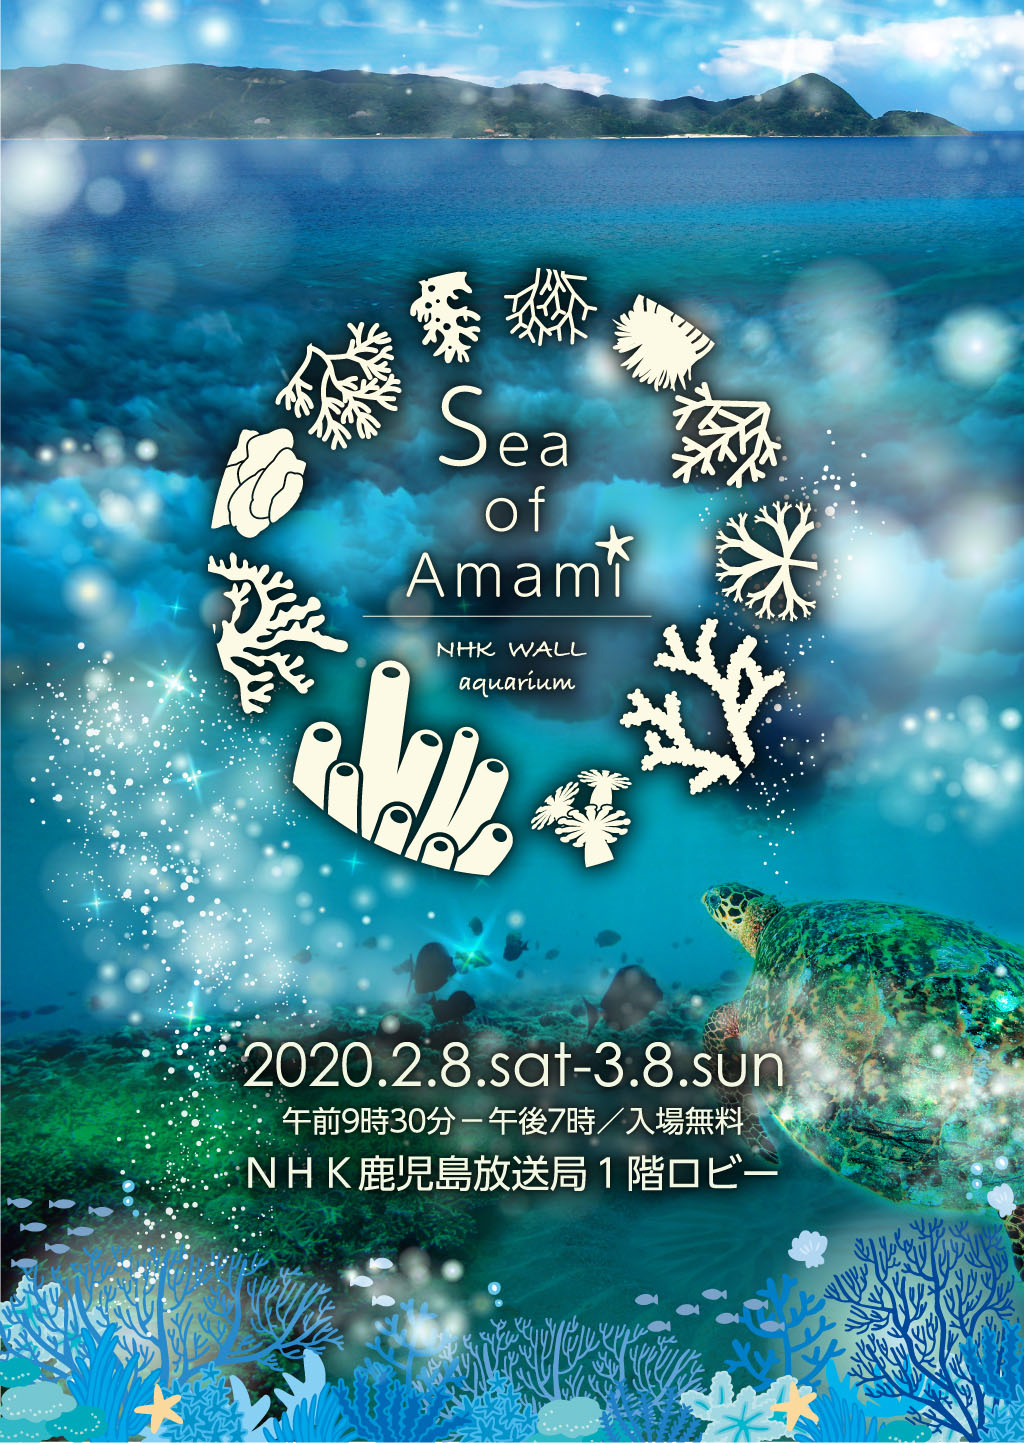 <b>【中止】</b>【鹿児島市】NHK WALL aquarium〜Sea of Amami〜